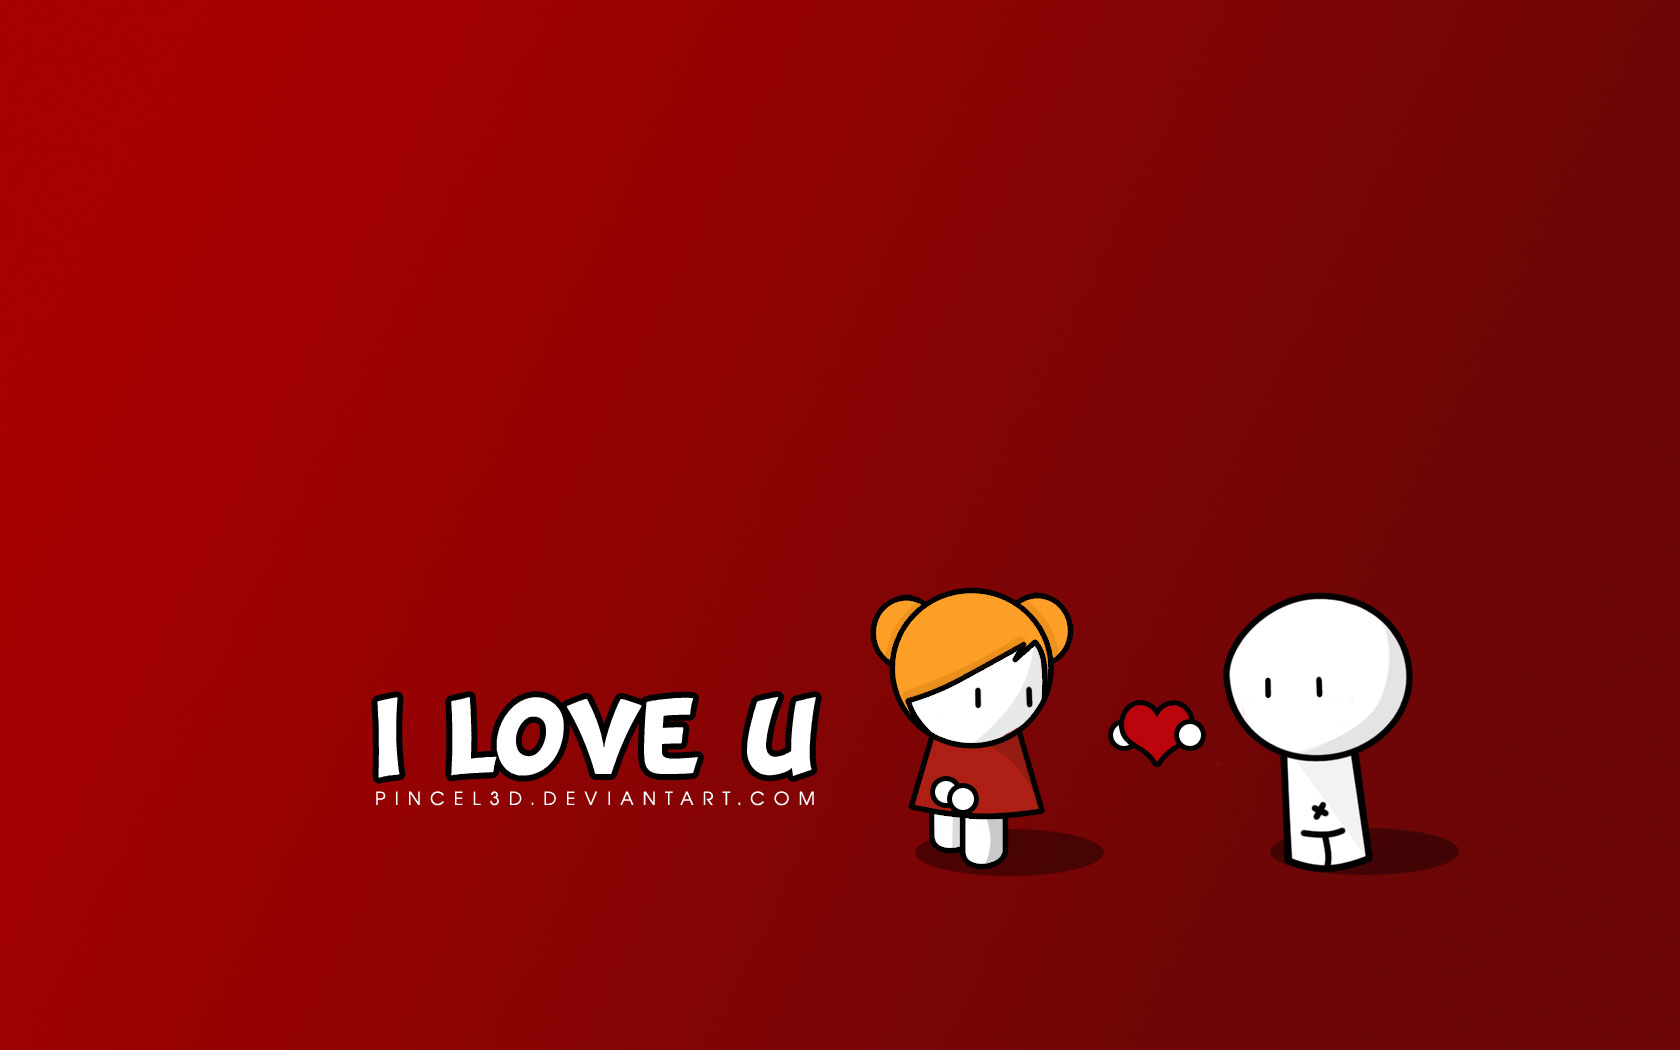 Desktop Wallpaper I Love You : I Love You Wallpapers HD A40 - HD Desktop Wallpapers 4k HD